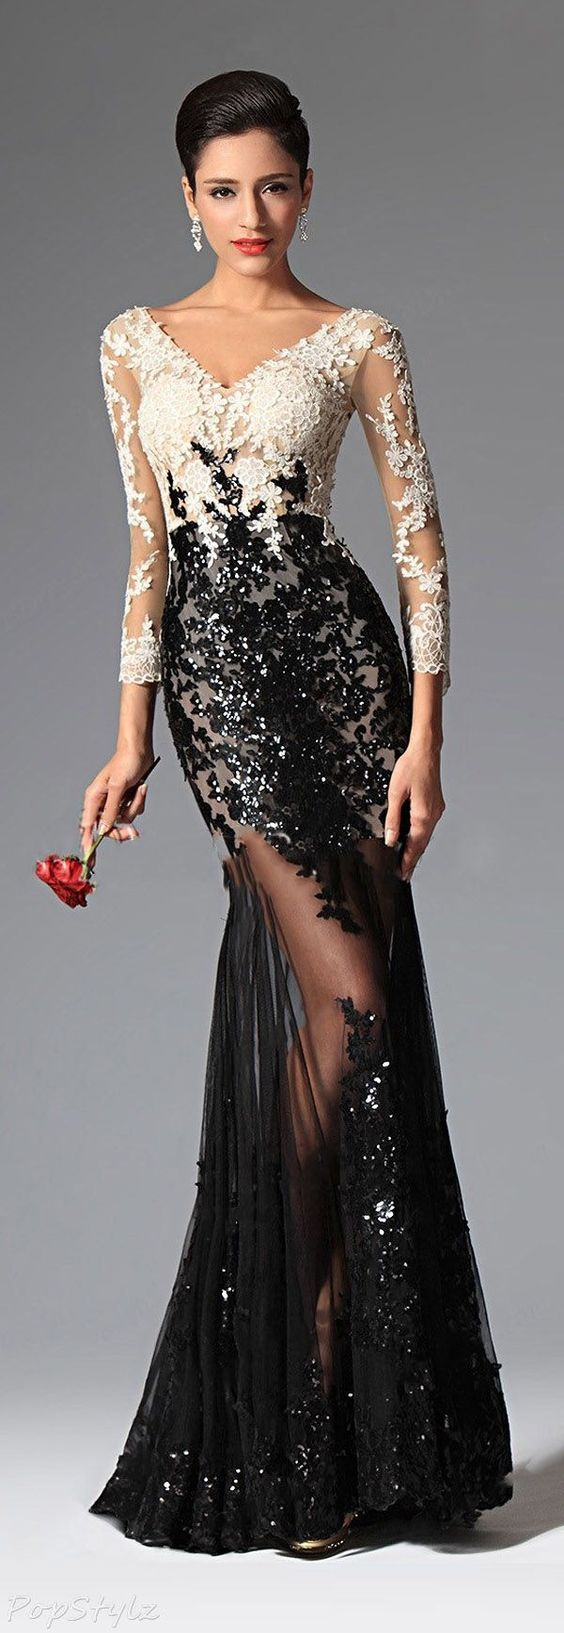 Sequin tulle u lace sleeves gown